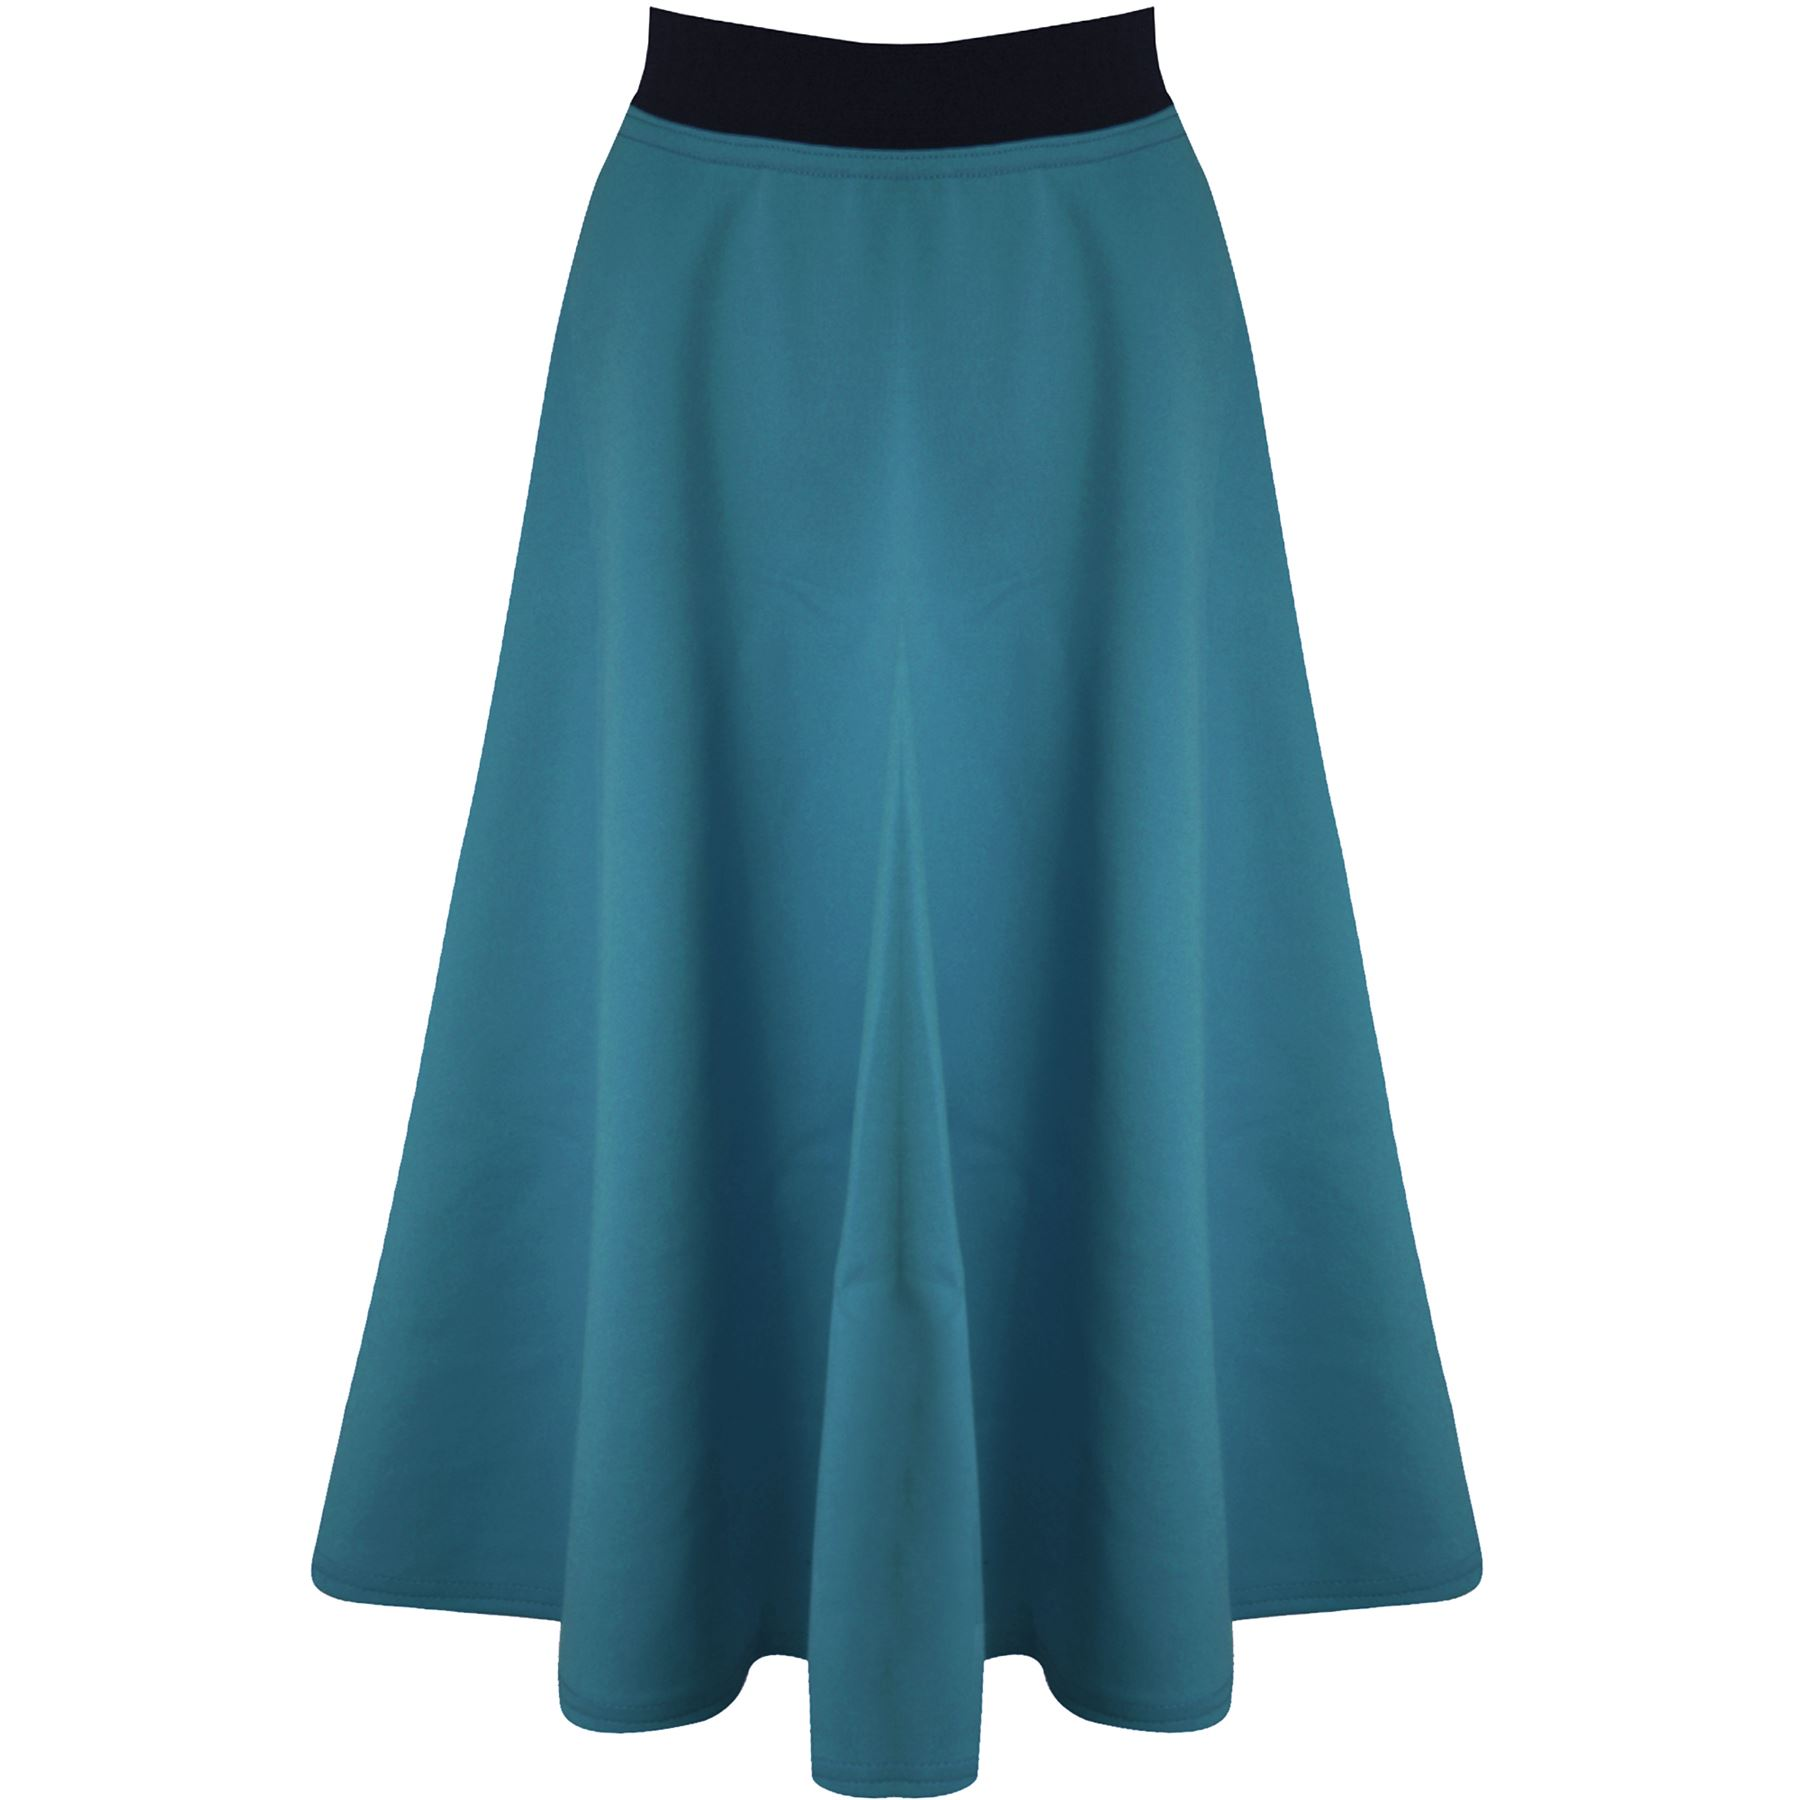 Online shopping for popular & hot Long Denim Skirts for Women from Women's Clothing & Accessories, Skirts, Mother & Kids, Novelty & Special Use and more related Long Denim Skirts for Women like denim skirt for women long, long skirt denim for women, long denim skirt for women, denim long skirt for women. Discover over of the best Selection Long Denim Skirts for Women on liveblog.ga